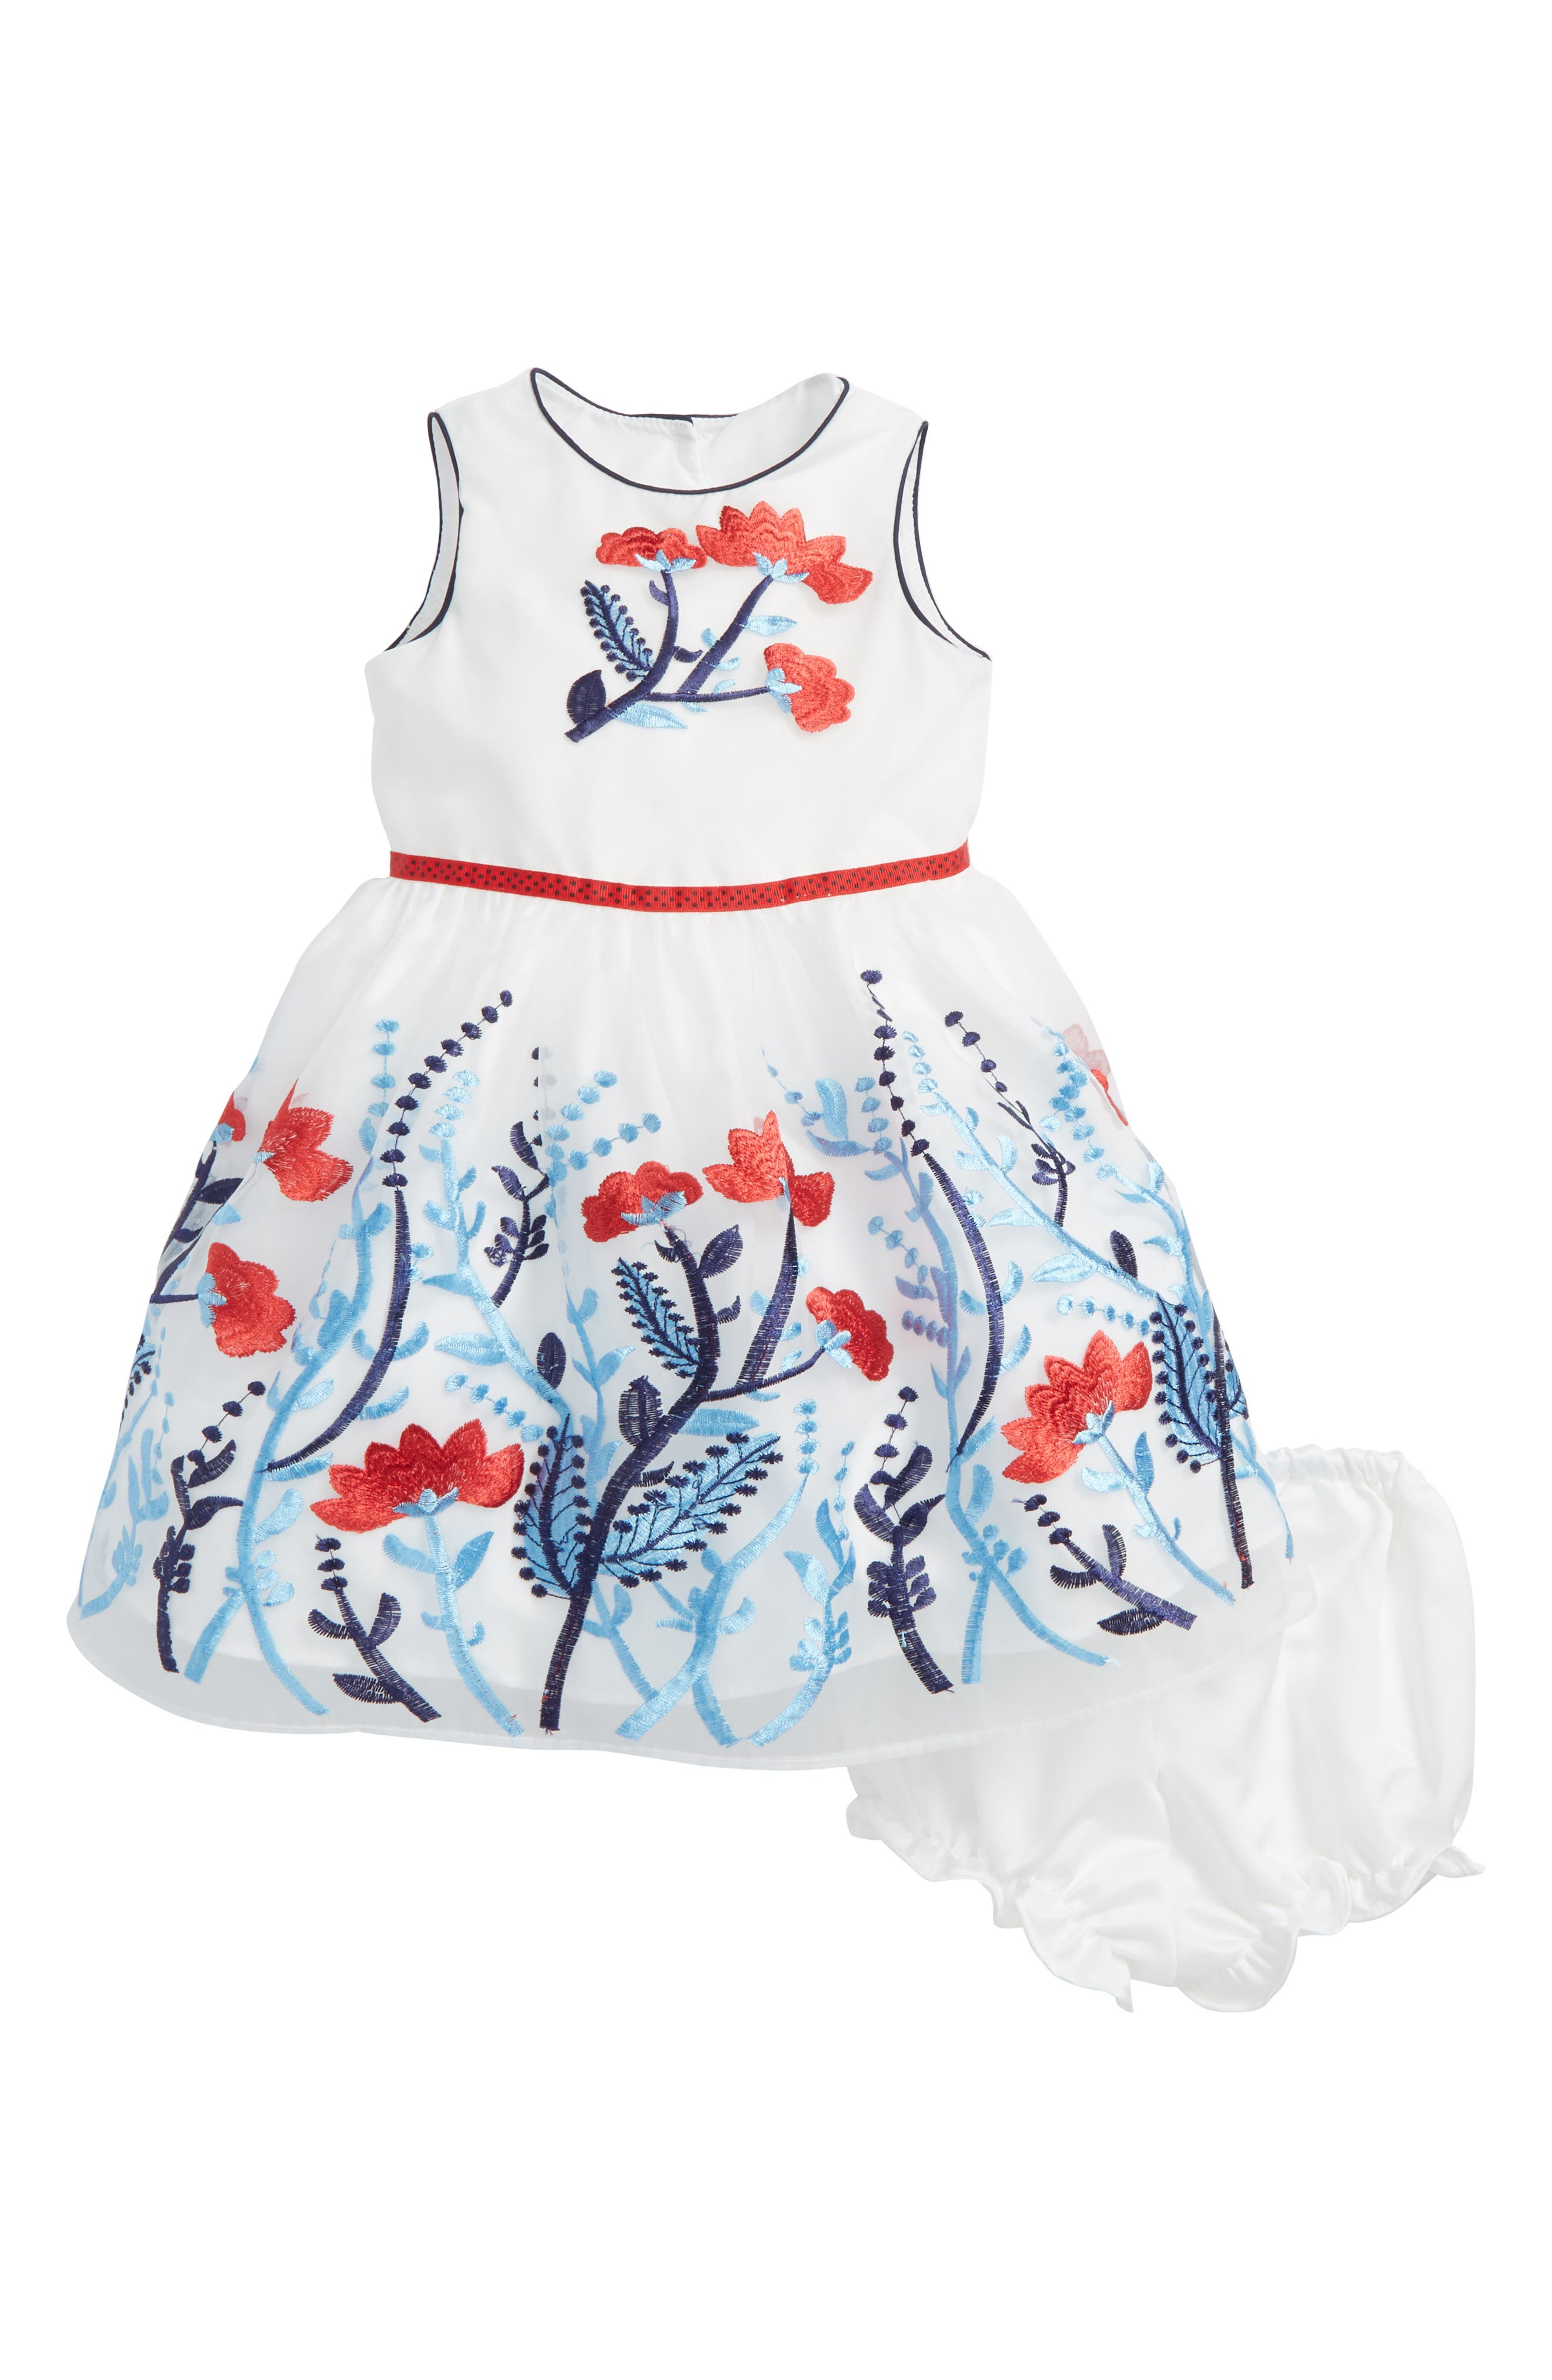 Embroidered Flower Dress,                             Main thumbnail 1, color,                             White Multi